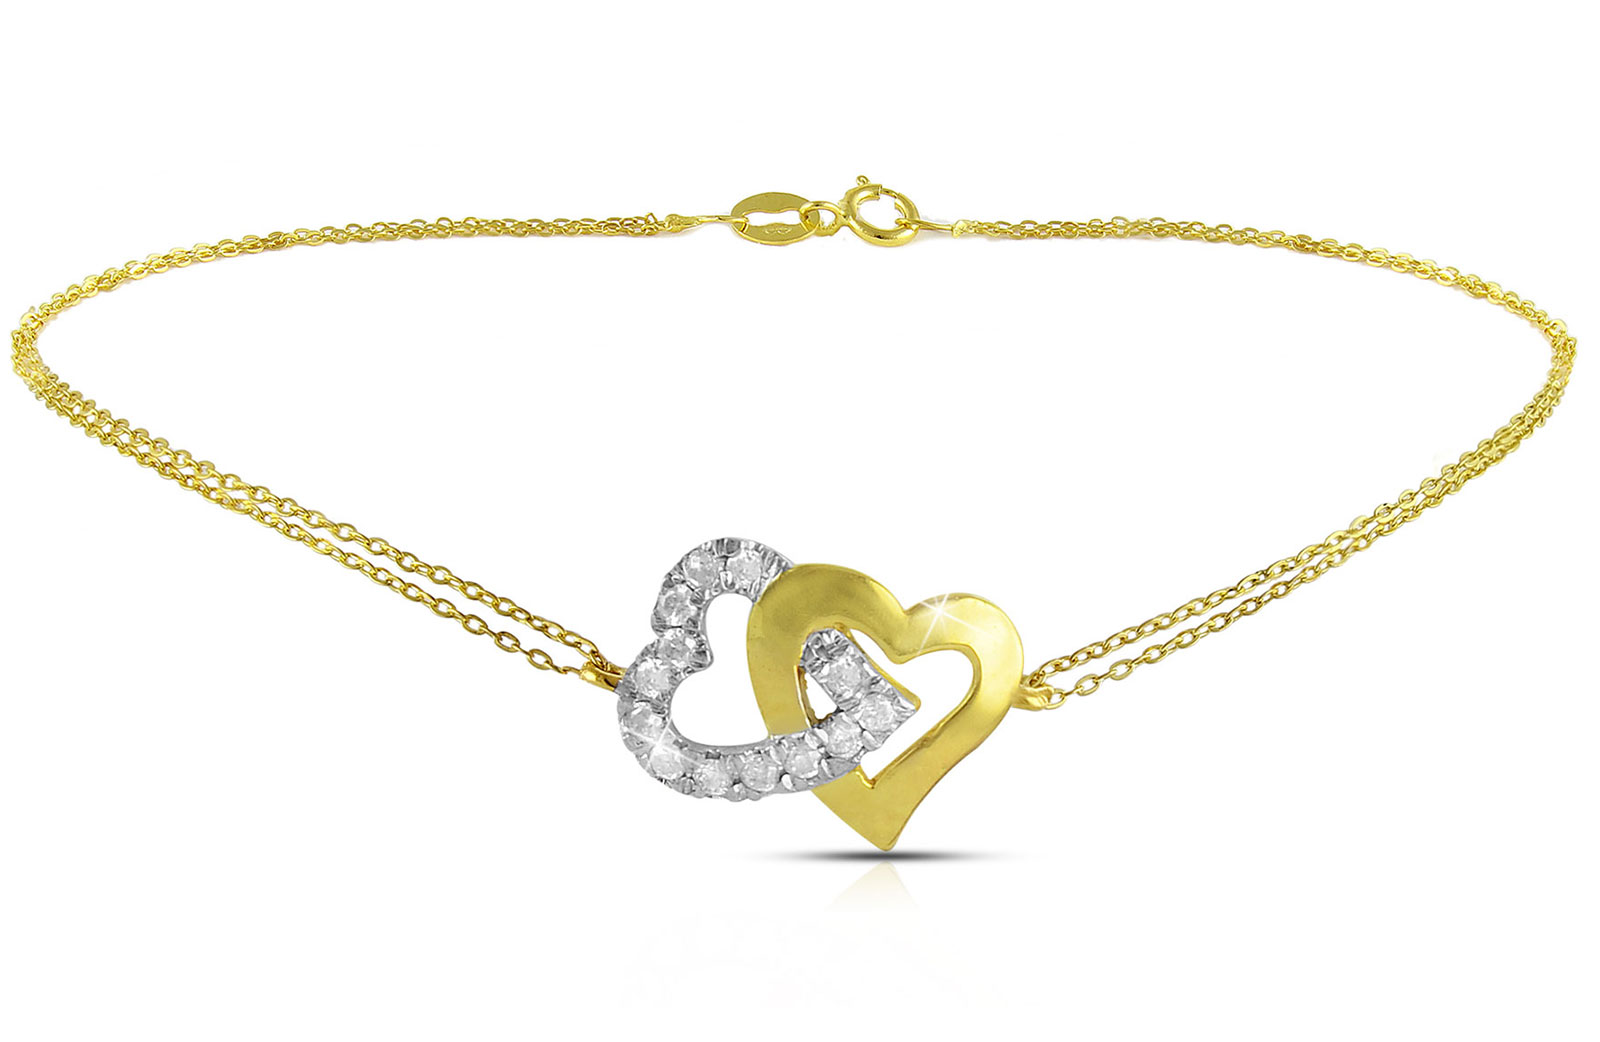 Vera Perla 18K Solid Gold and 0.15Cts Diamonds Interlocking Hearts Double Link Bracelet